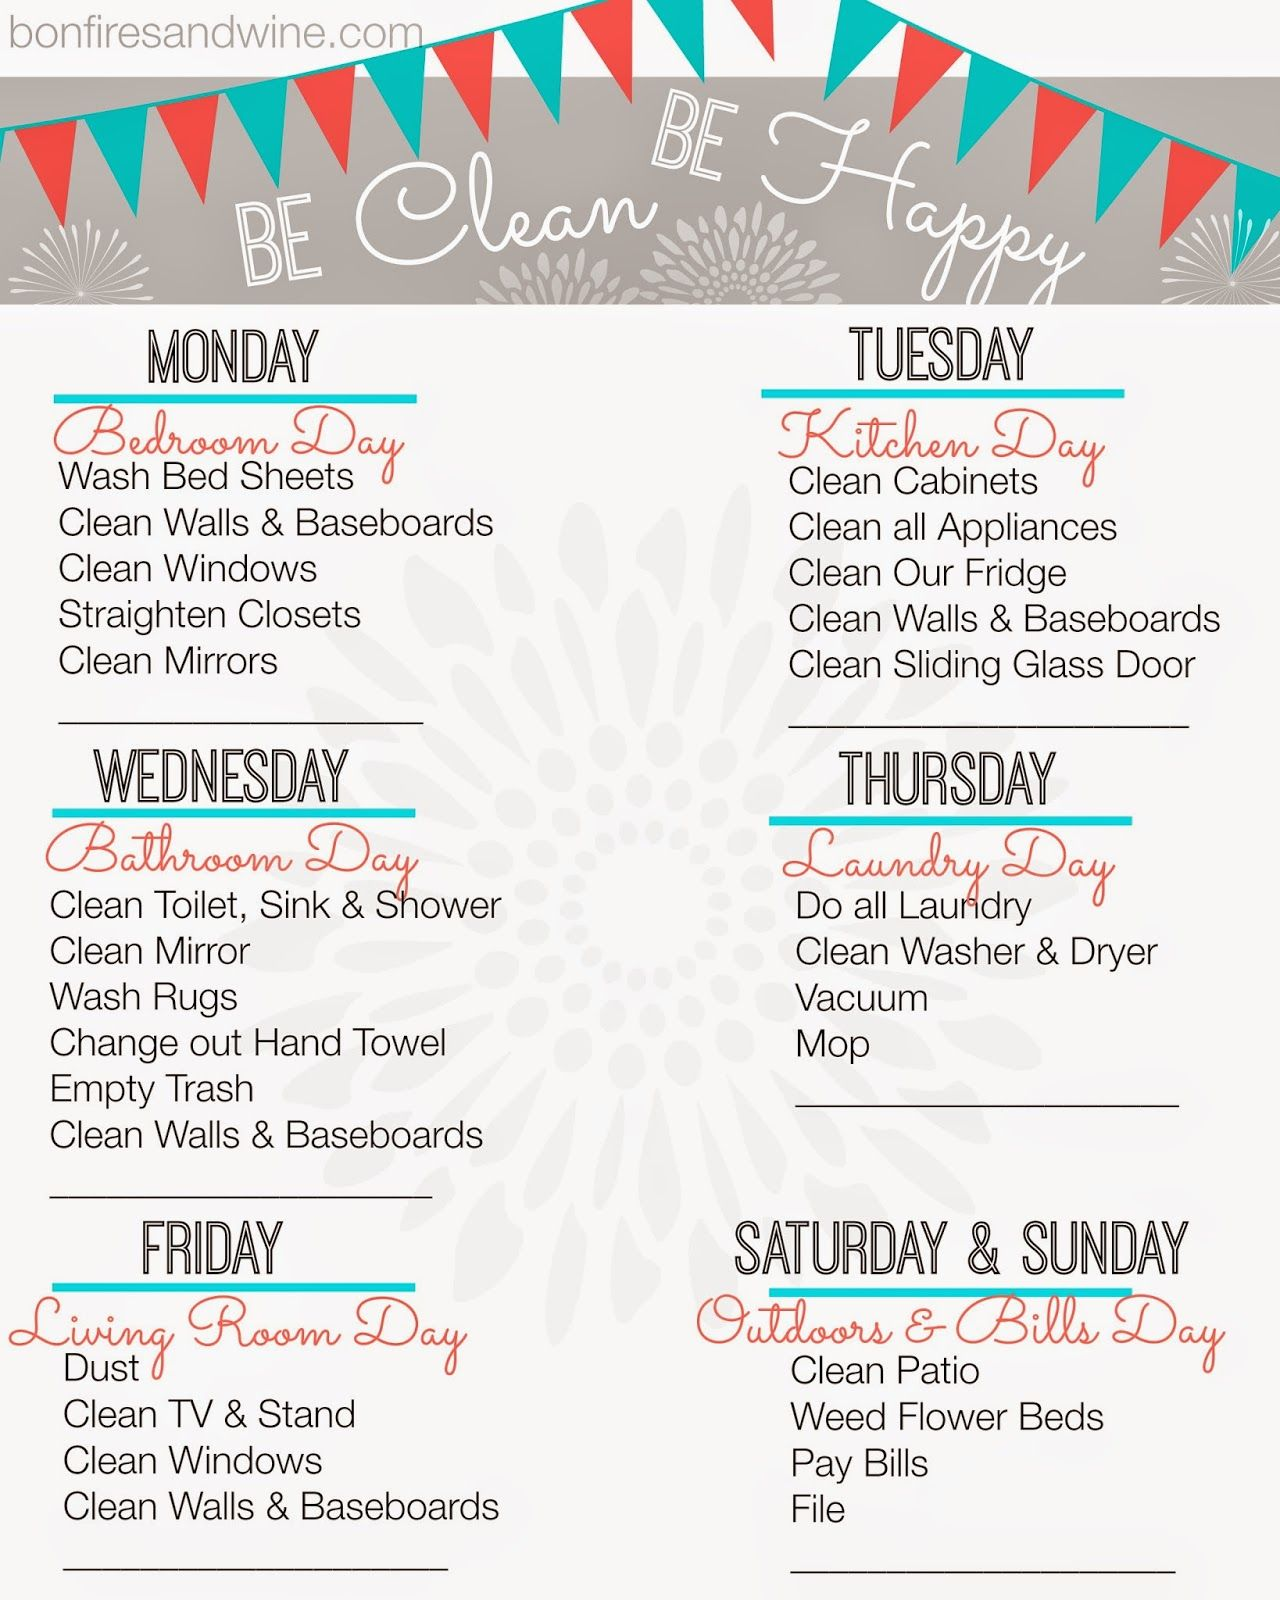 photo relating to Free Printable Cleaning Schedule referred to as Weekly Cleansing Program Cost-free Printable Extraordinary